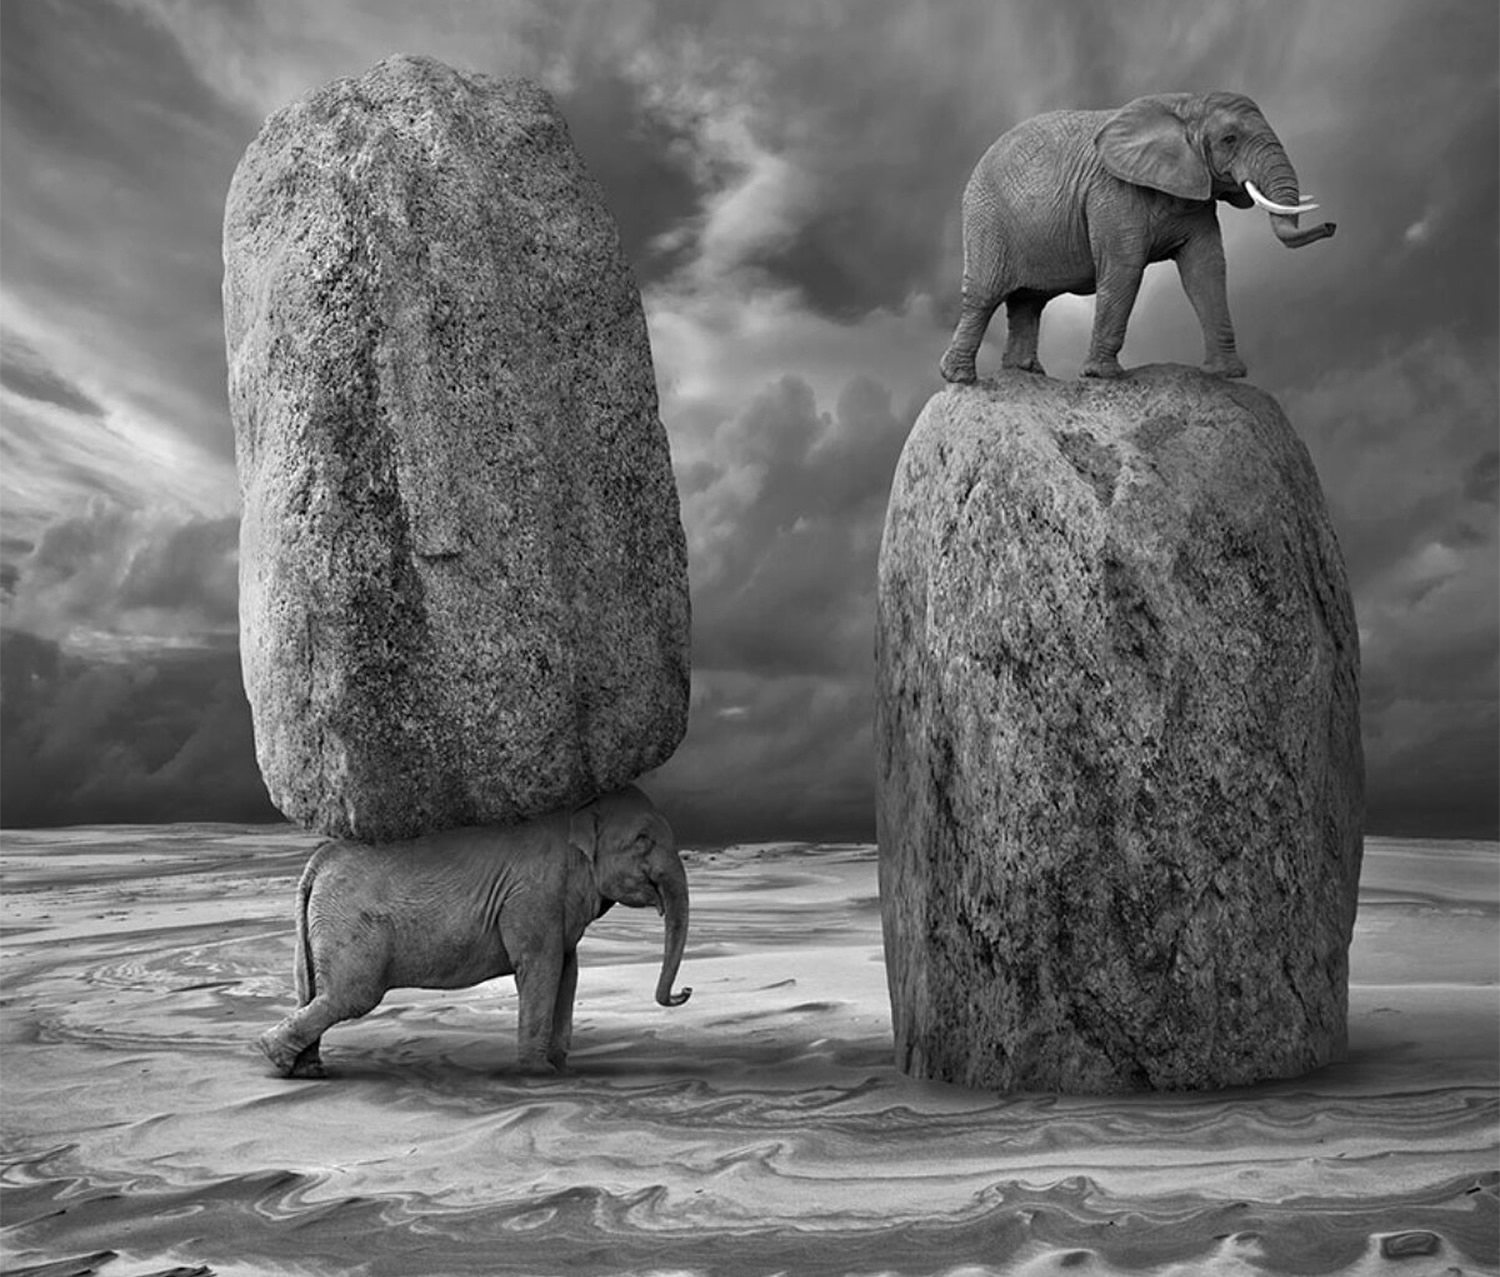 elephants and rocks, surreal photo Dariusz Klimczak